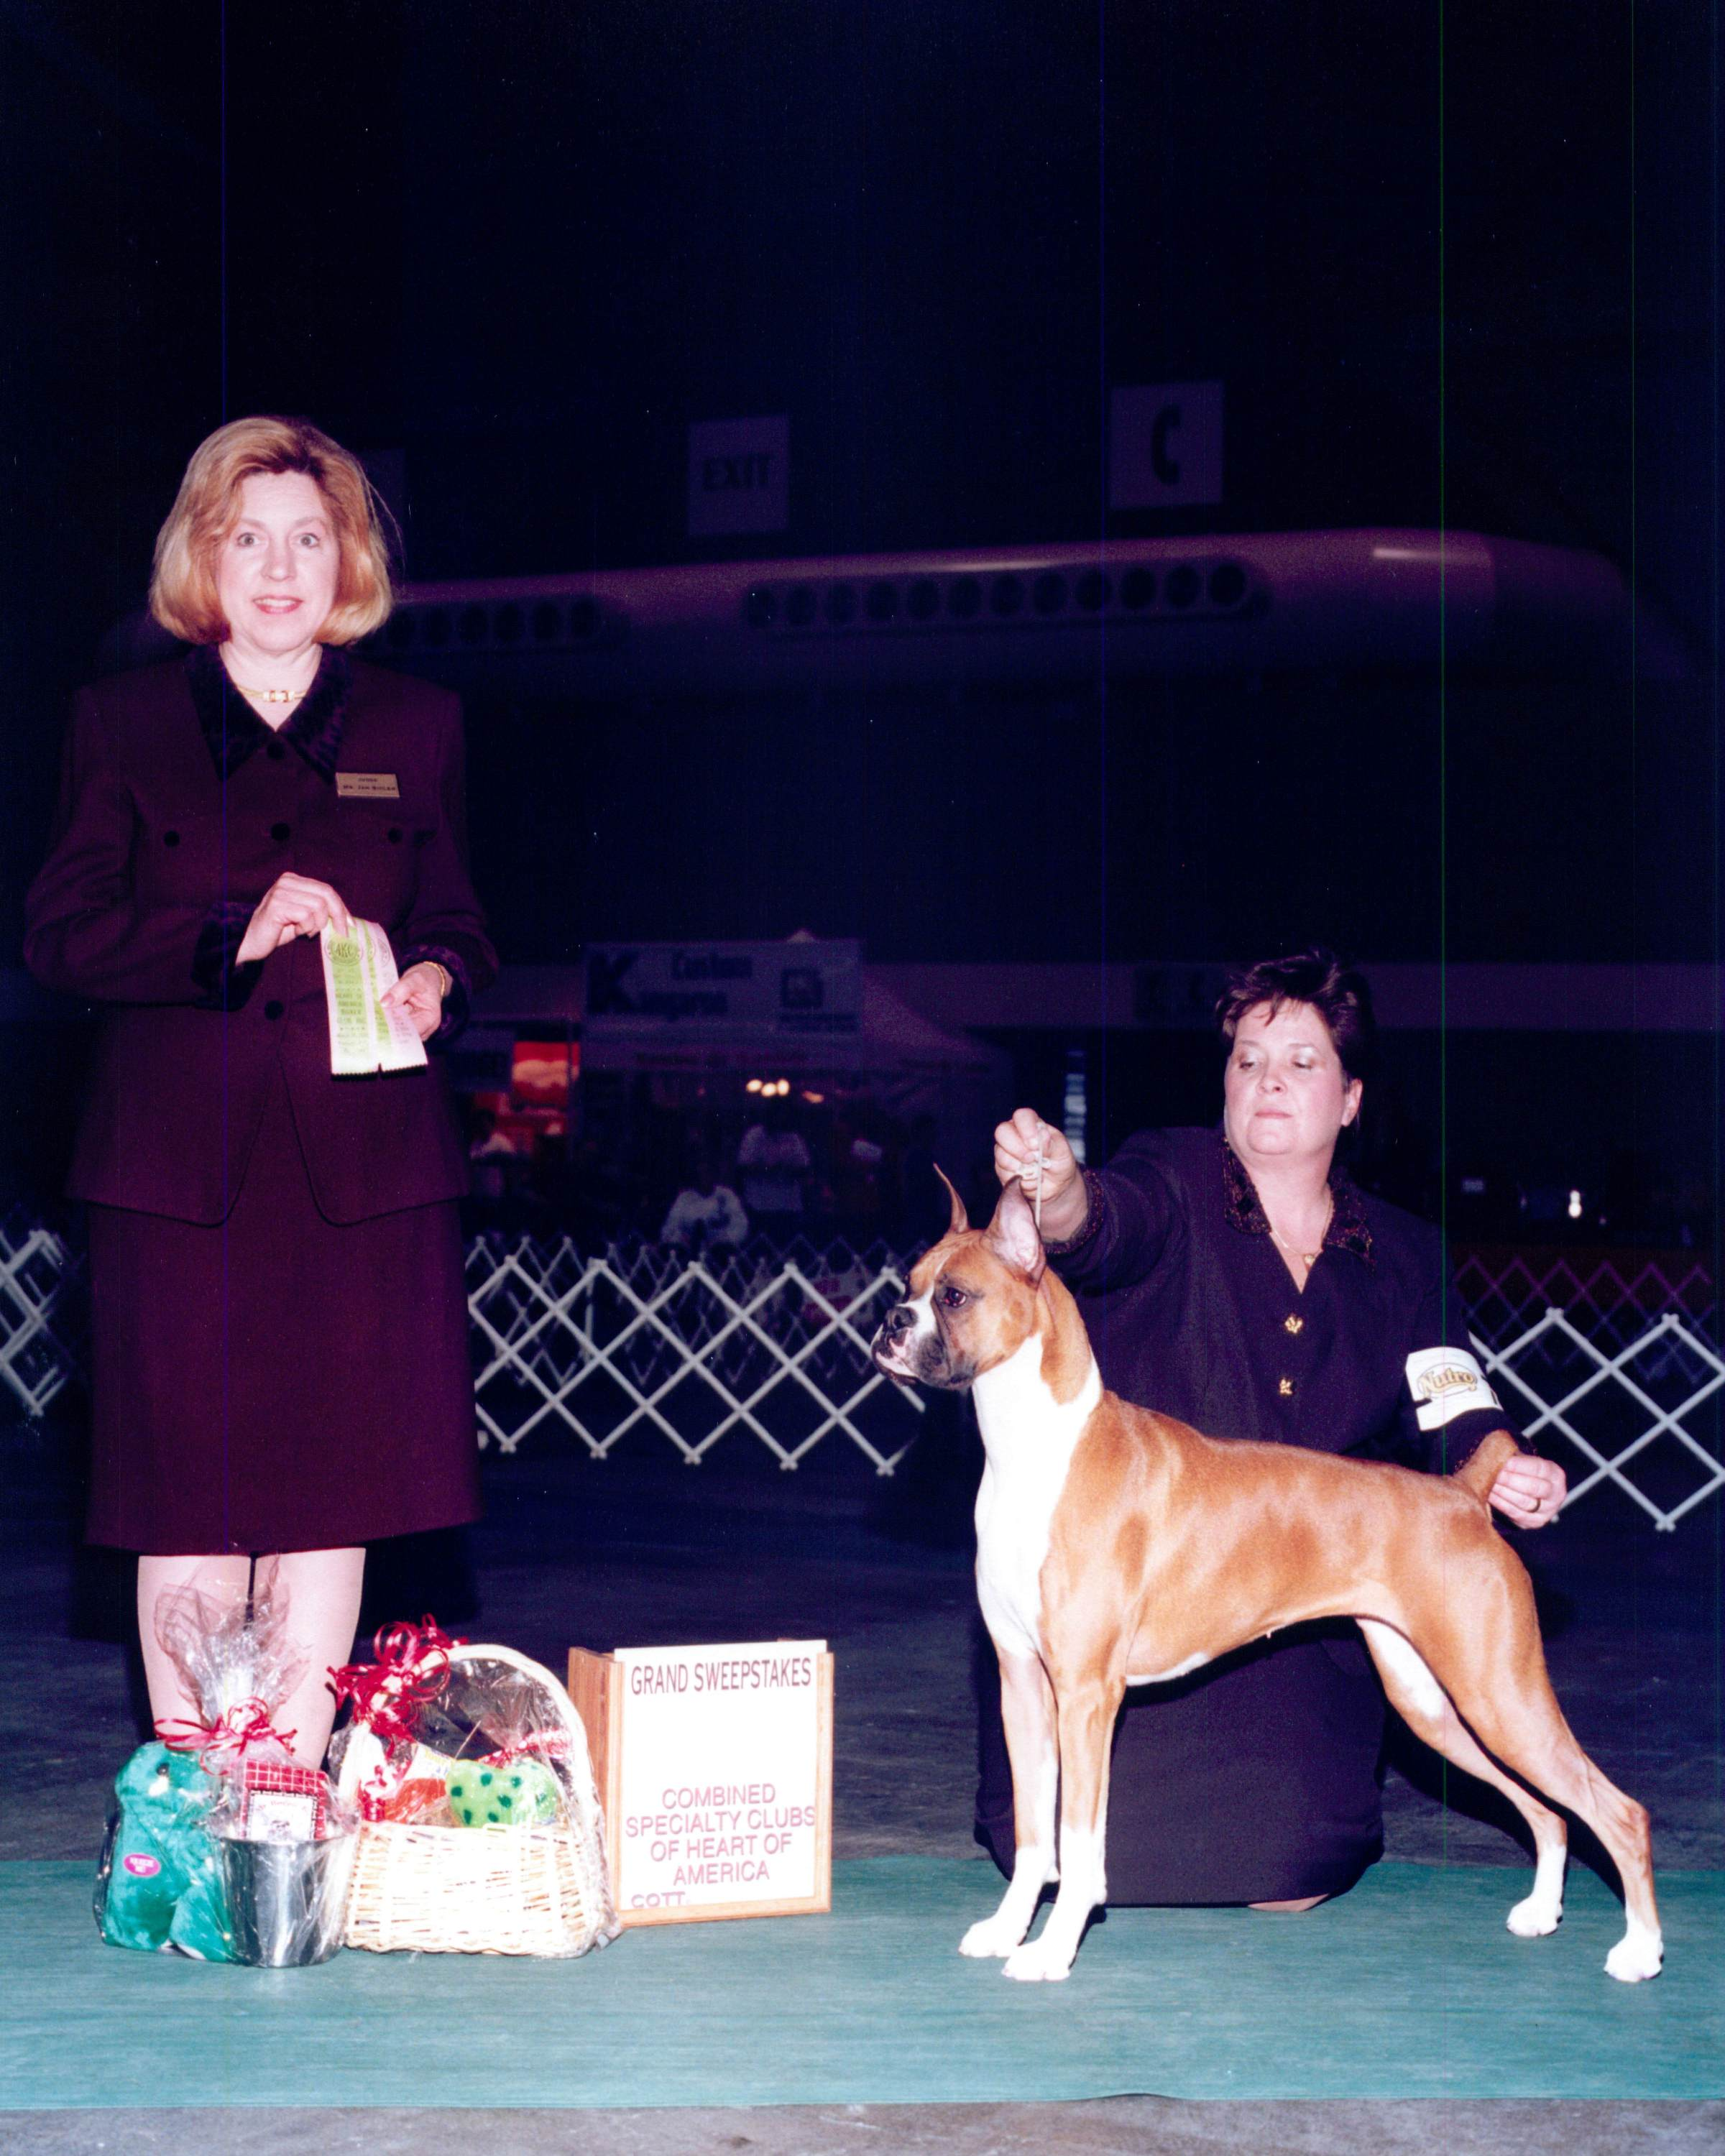 Grand Sweepstakes, Best Junior @ 2001 Specialty Show #1